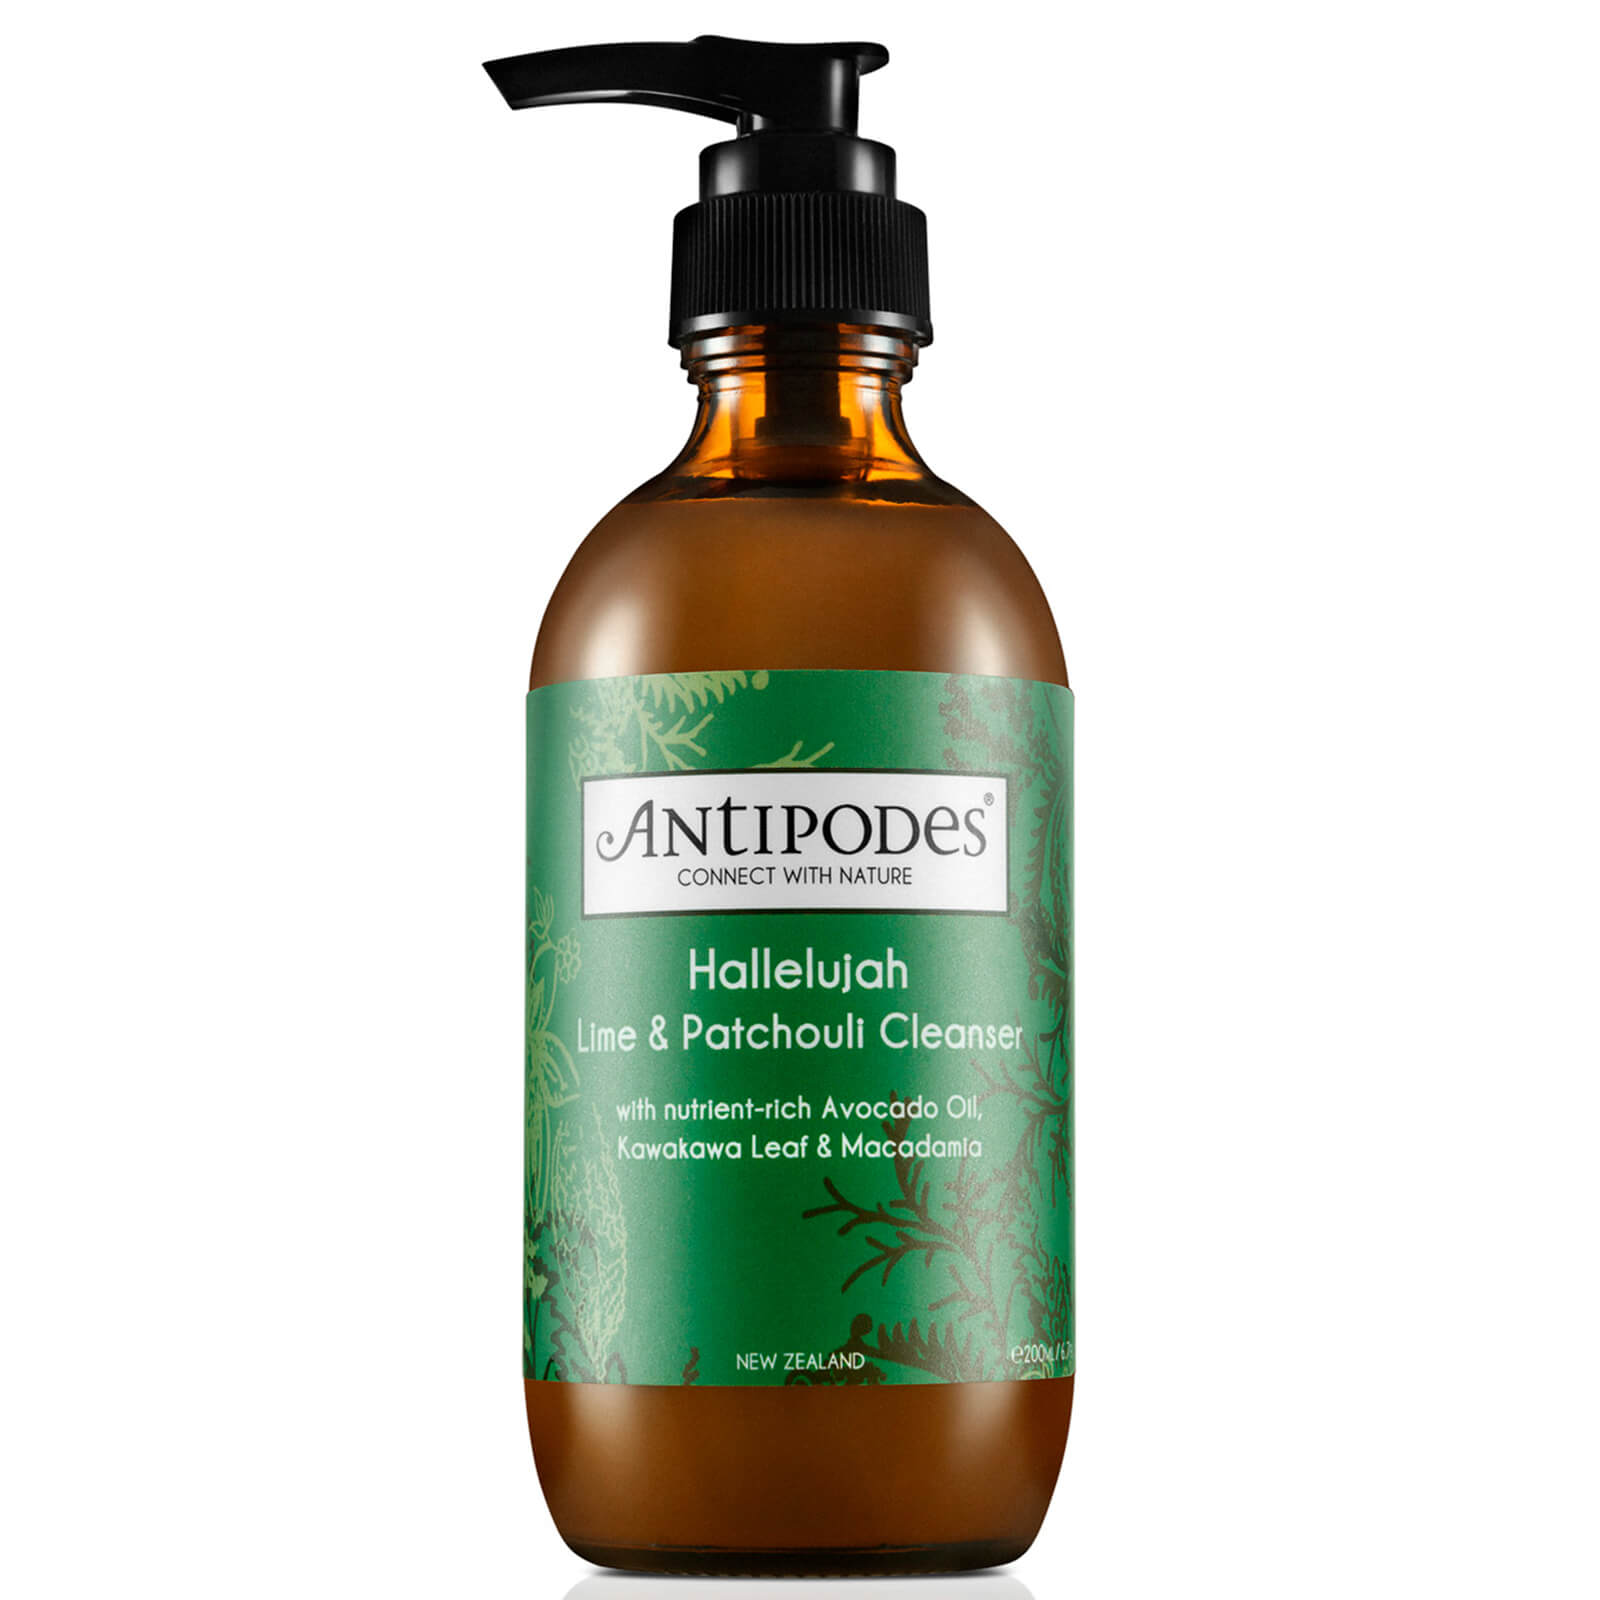 Antipodes Hallelujah Lime & Patchouli Cleanser 200ml